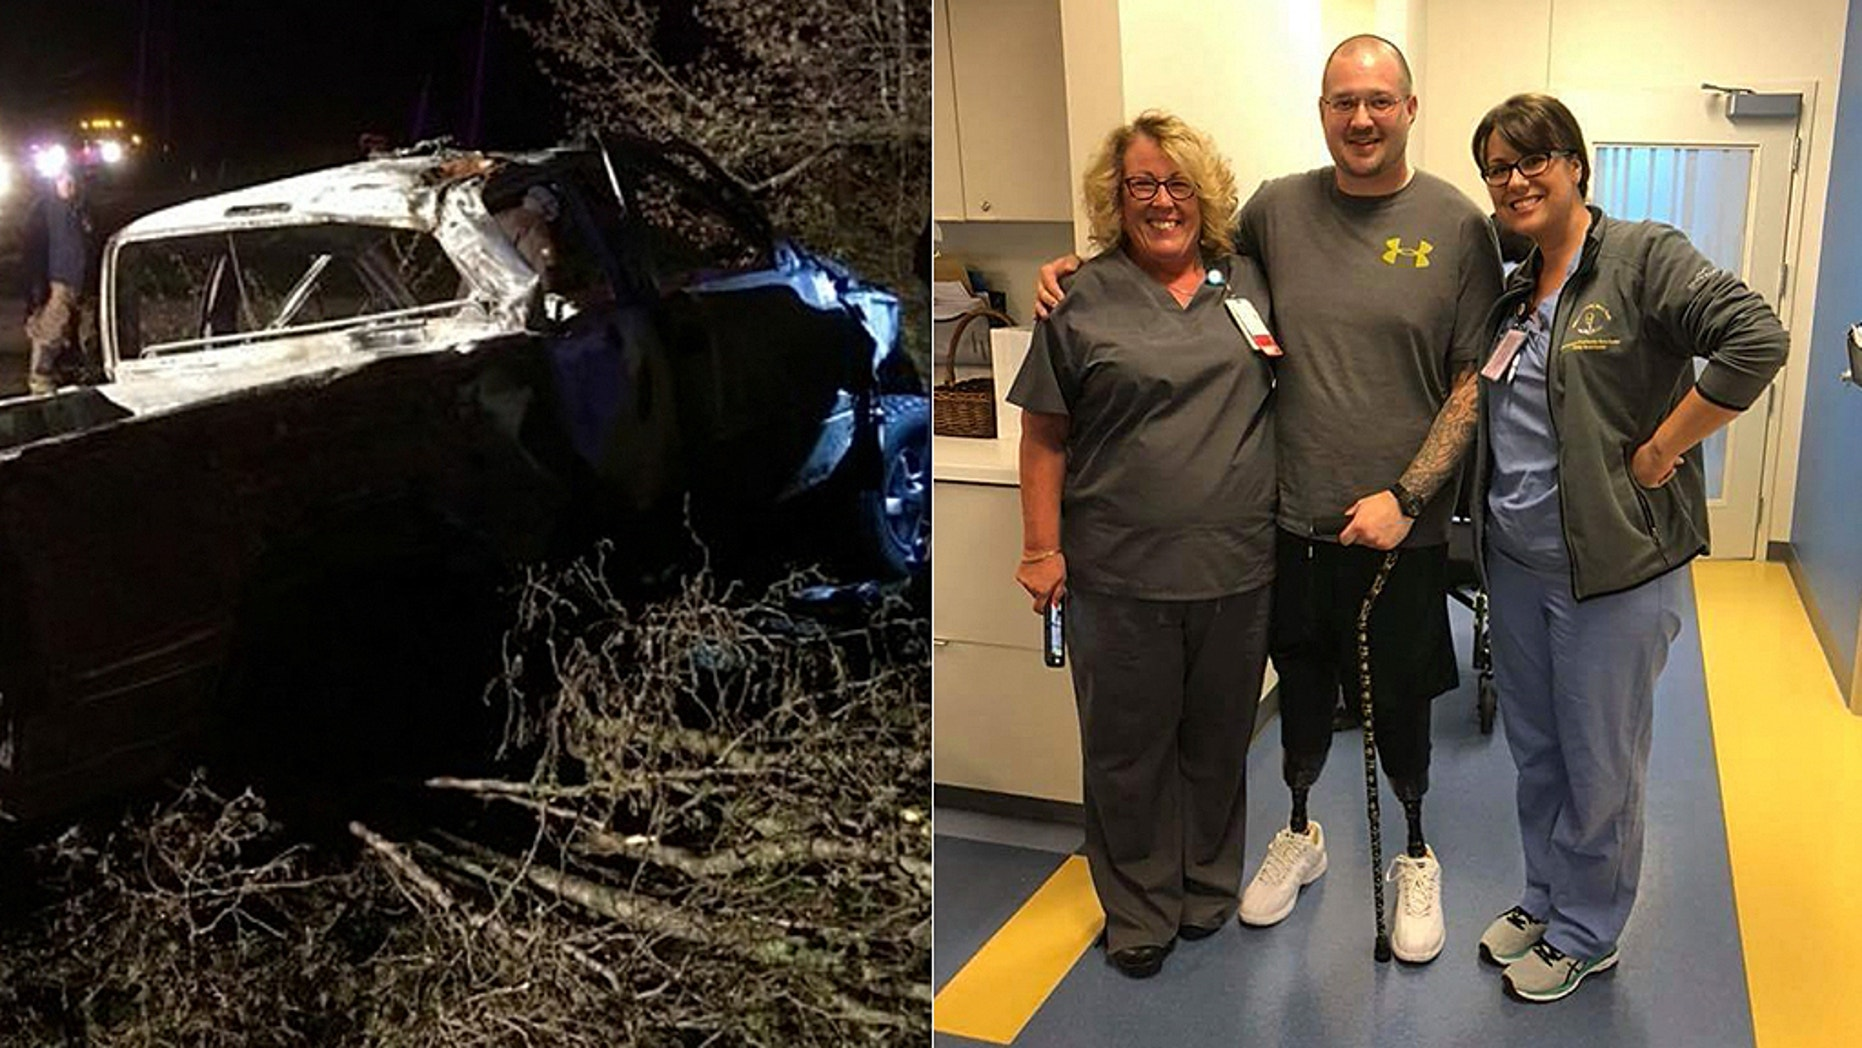 Joseph Green is now working to warn others about the dangers of drunk driving as he continues to cope and recover from his injuries.